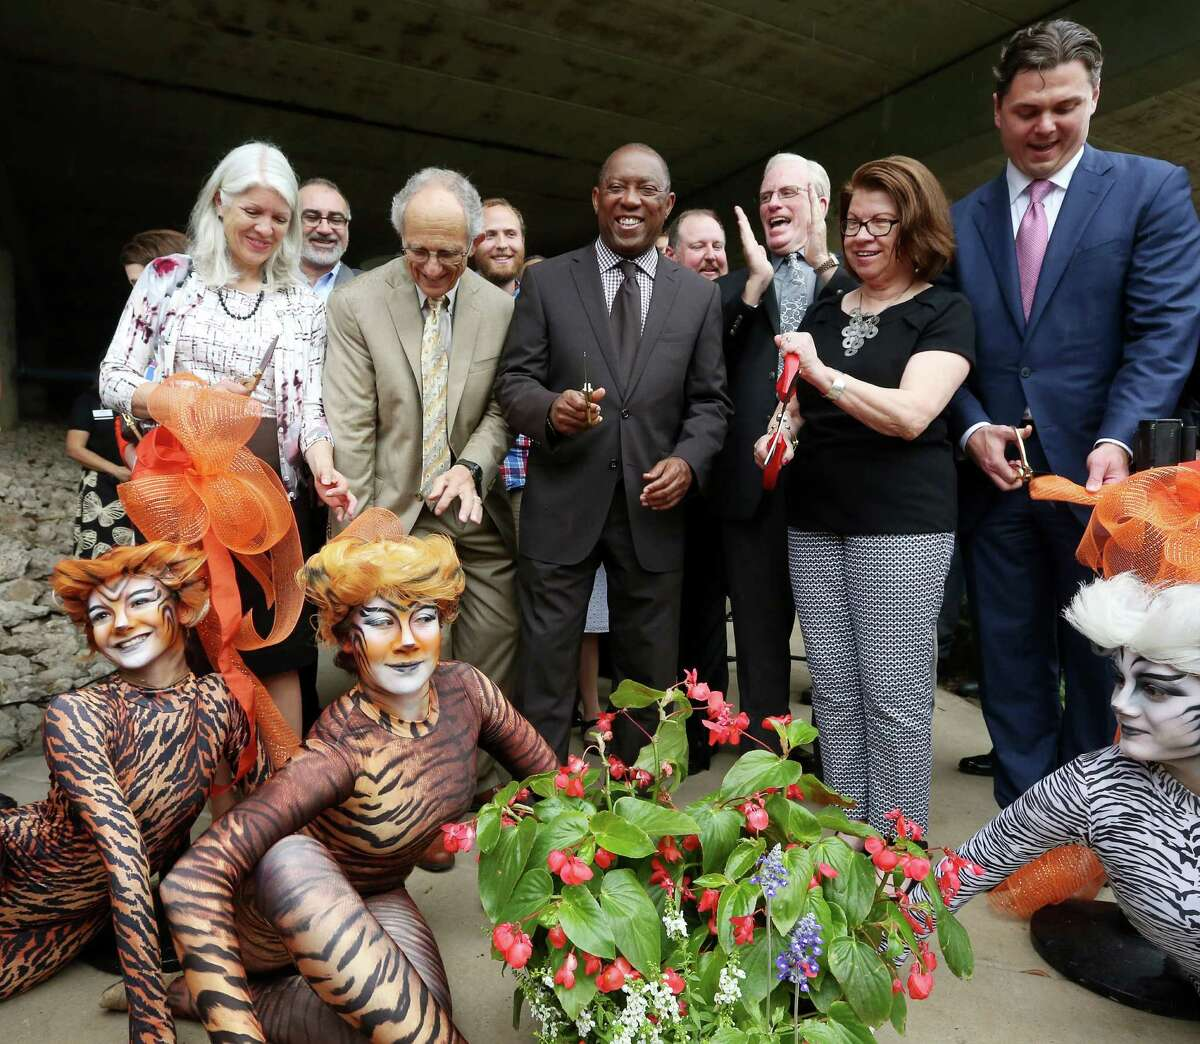 District H. Council Member Karla Cisneros, from front left, Mike Garver, Mayor Sylvester Turner, Joe Turner, Anne Olson and Collin Cox, cut a ribbon during a ceremony celebrating the opening of a new part of the Buffalo Bayou Path between Smith Street and Travis Street, Thursday, March 31, 2016, in Houston.